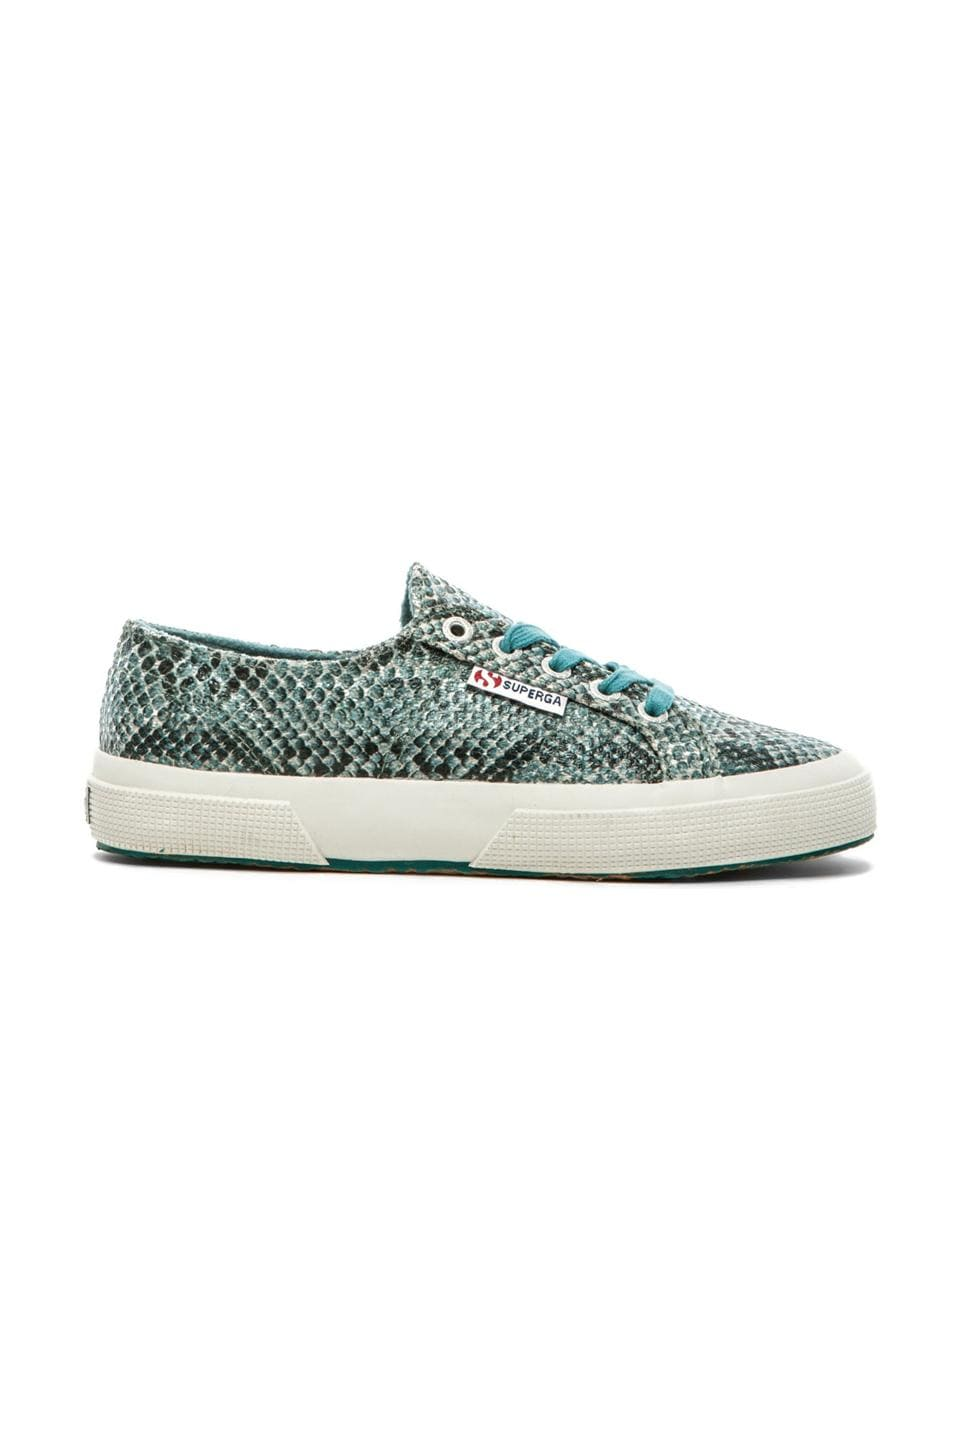 Superga Cotu Snake Sneaker in Snake Green